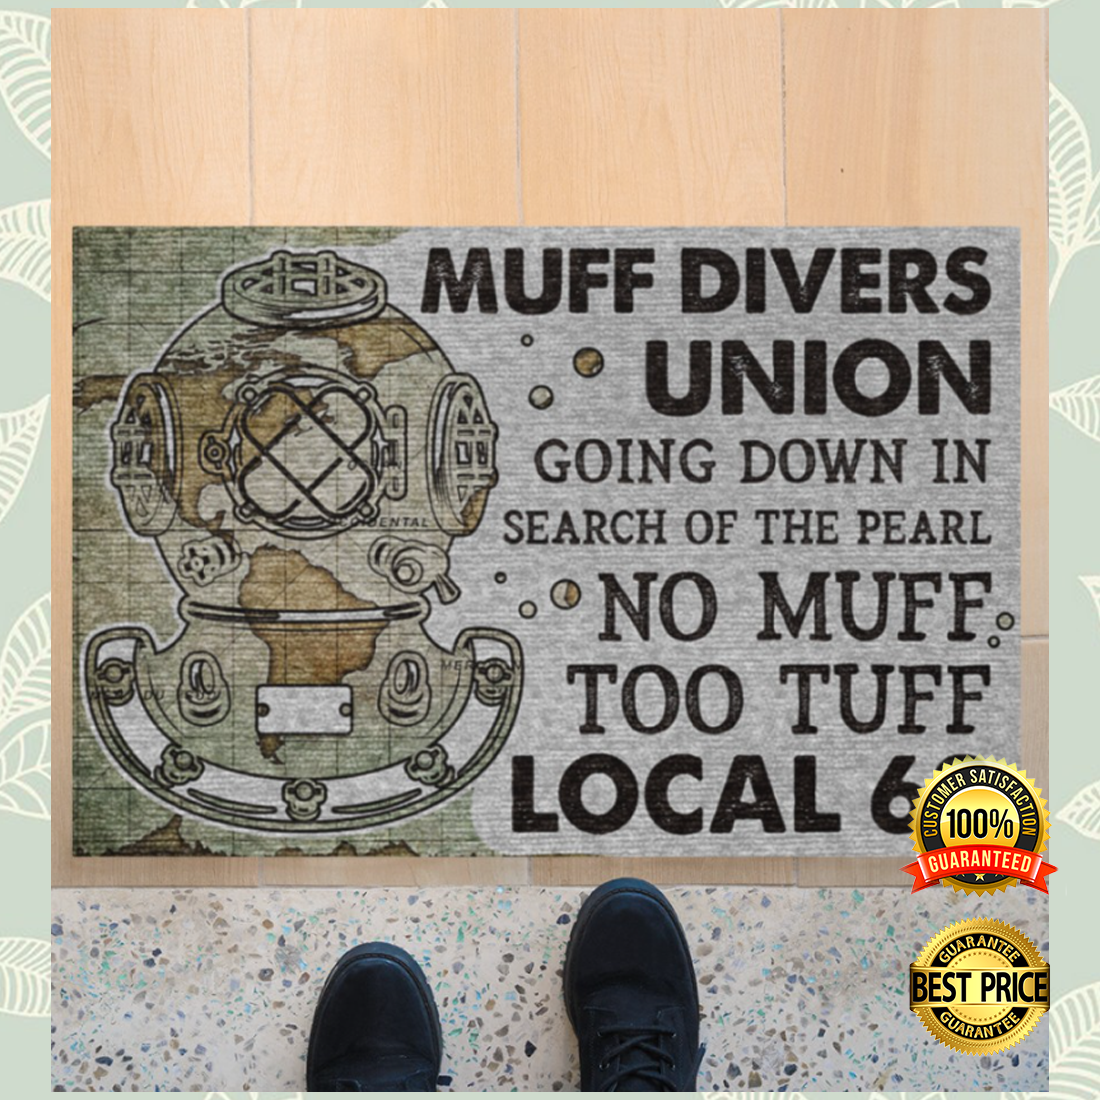 Muff divers union going down in search of the pearl doormat 4